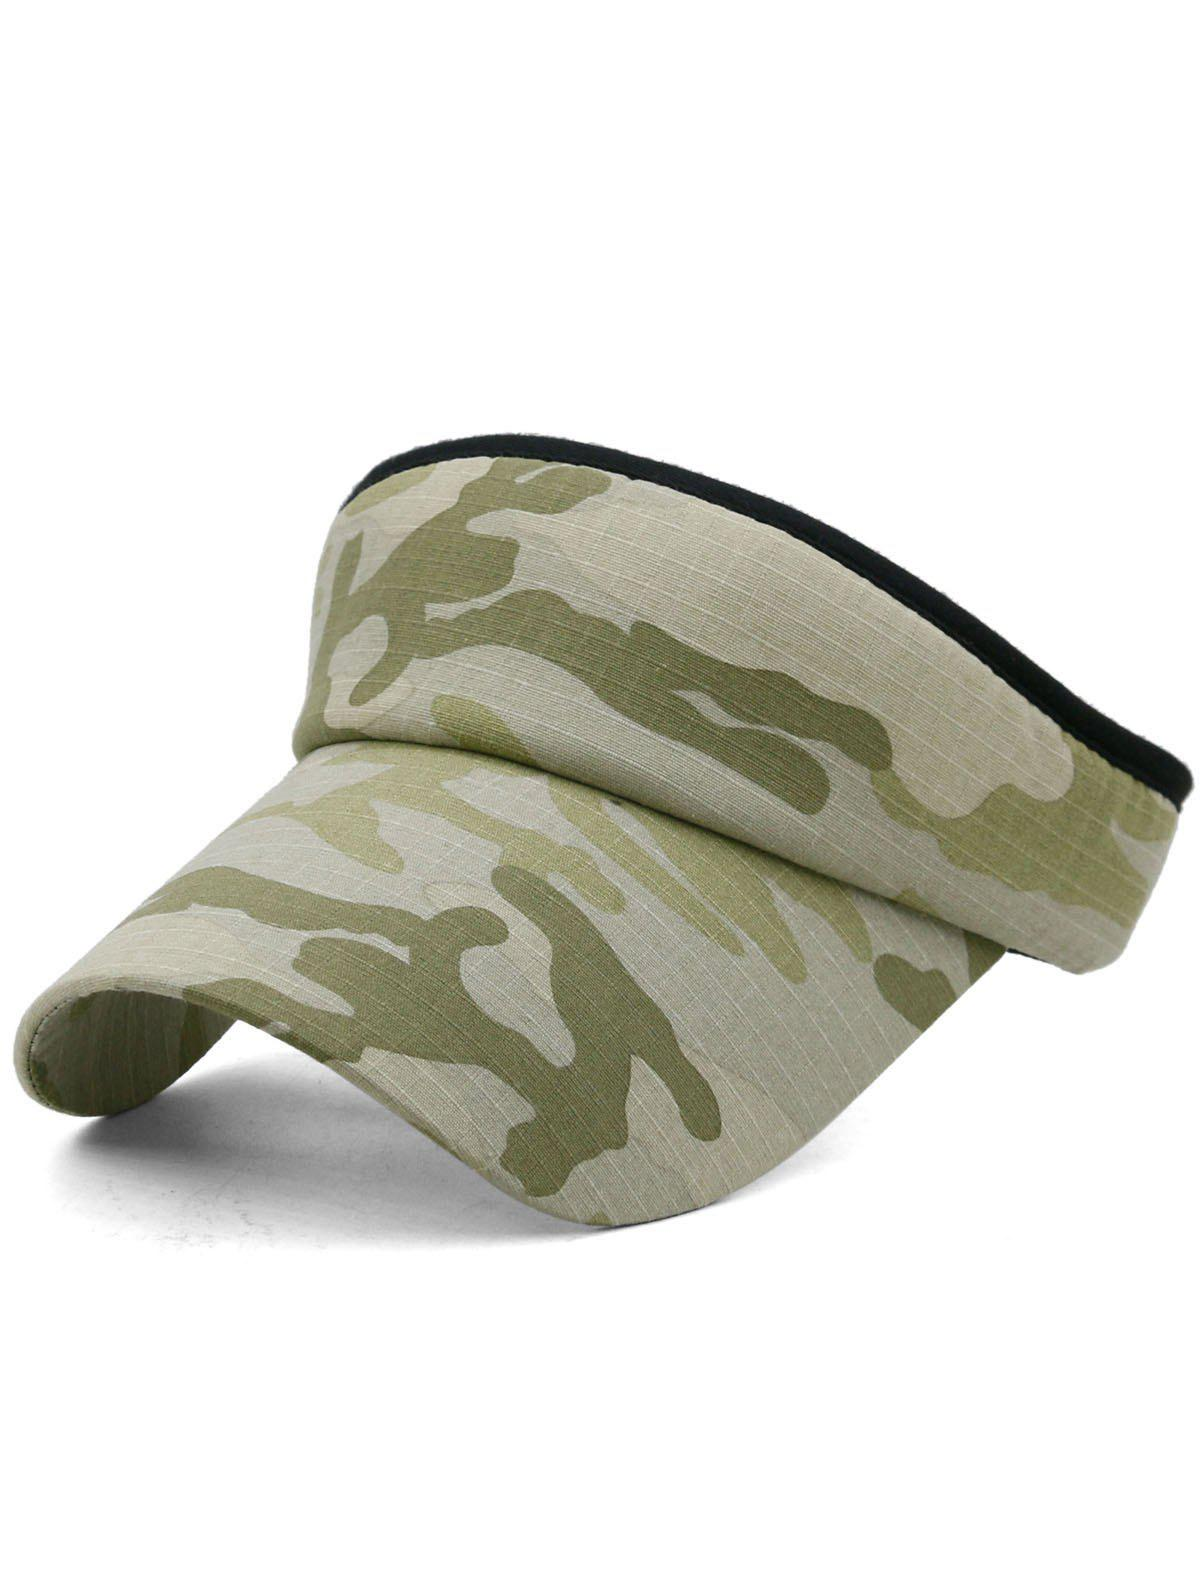 Affordable Outdoor Camo Printed Open Top Sun Hat